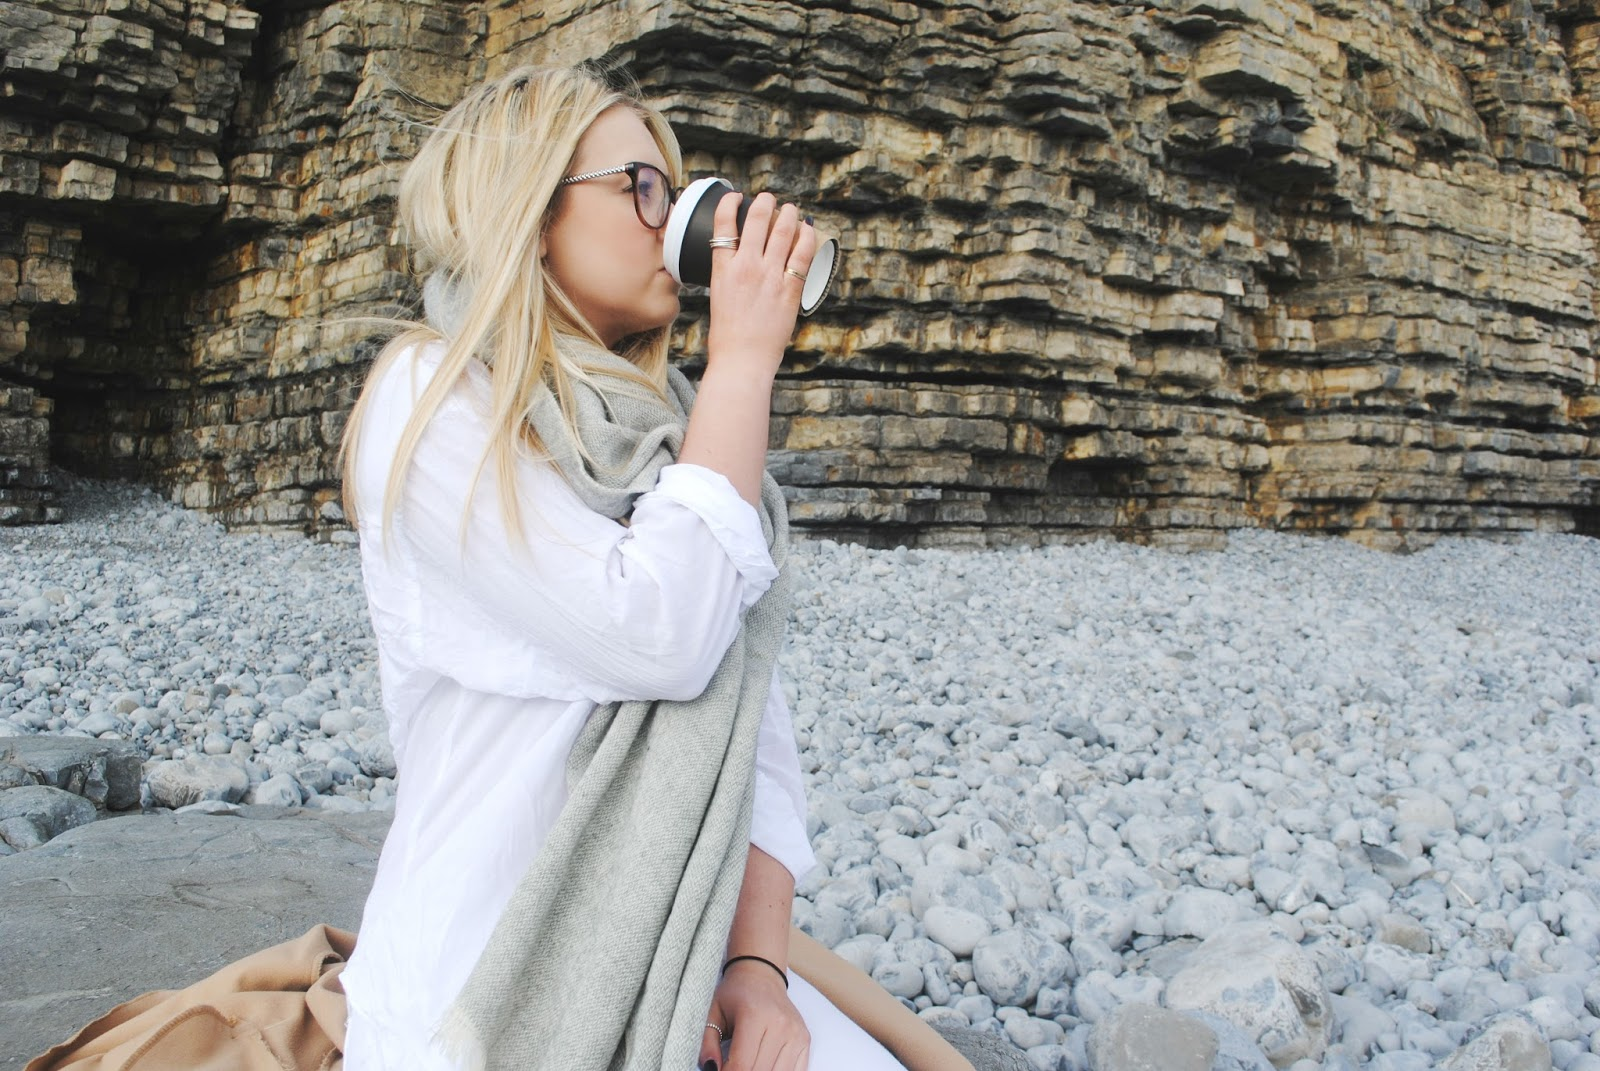 style edit fashion asos white jeans h&m camel coat converse primark specsavers love moschino beach sea